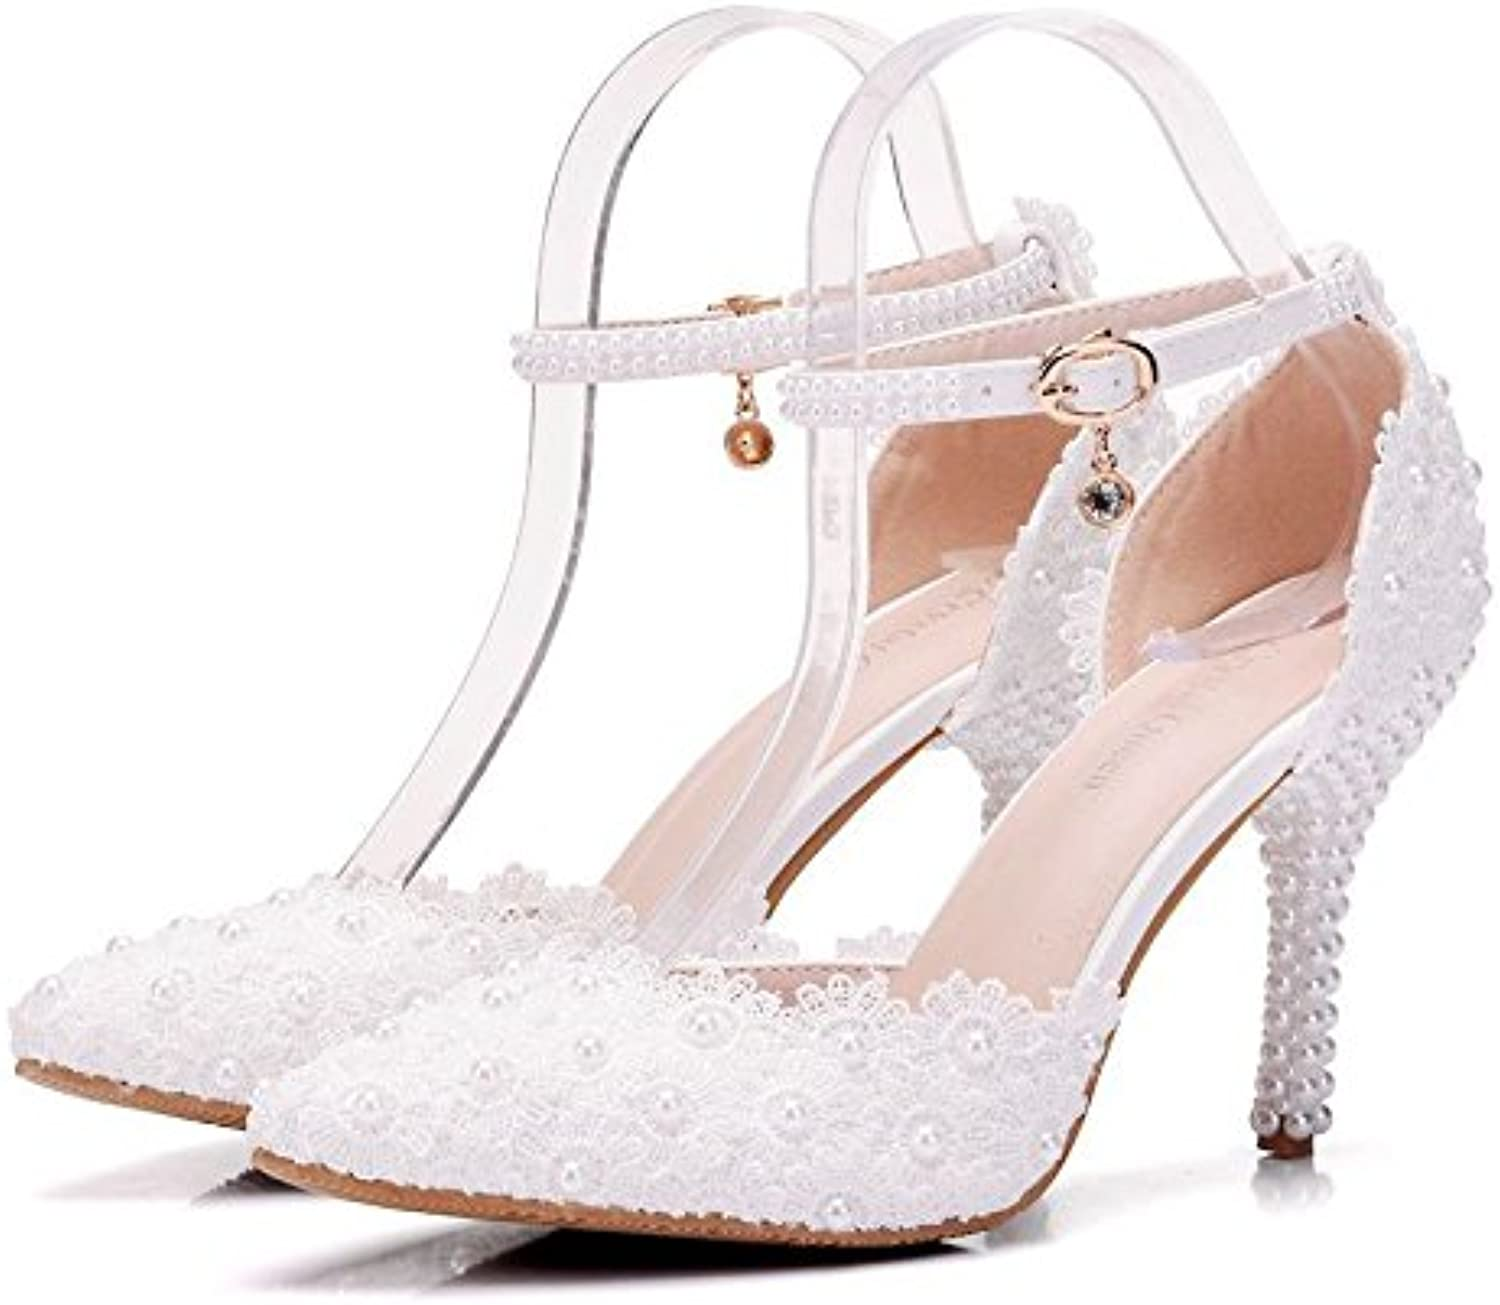 HYP Wedding Women shoes Wedding shoes Women Pumps Closed Toe Wedding Party Court shoes Bridesmaid Bridal shoes Pearl lace fine with